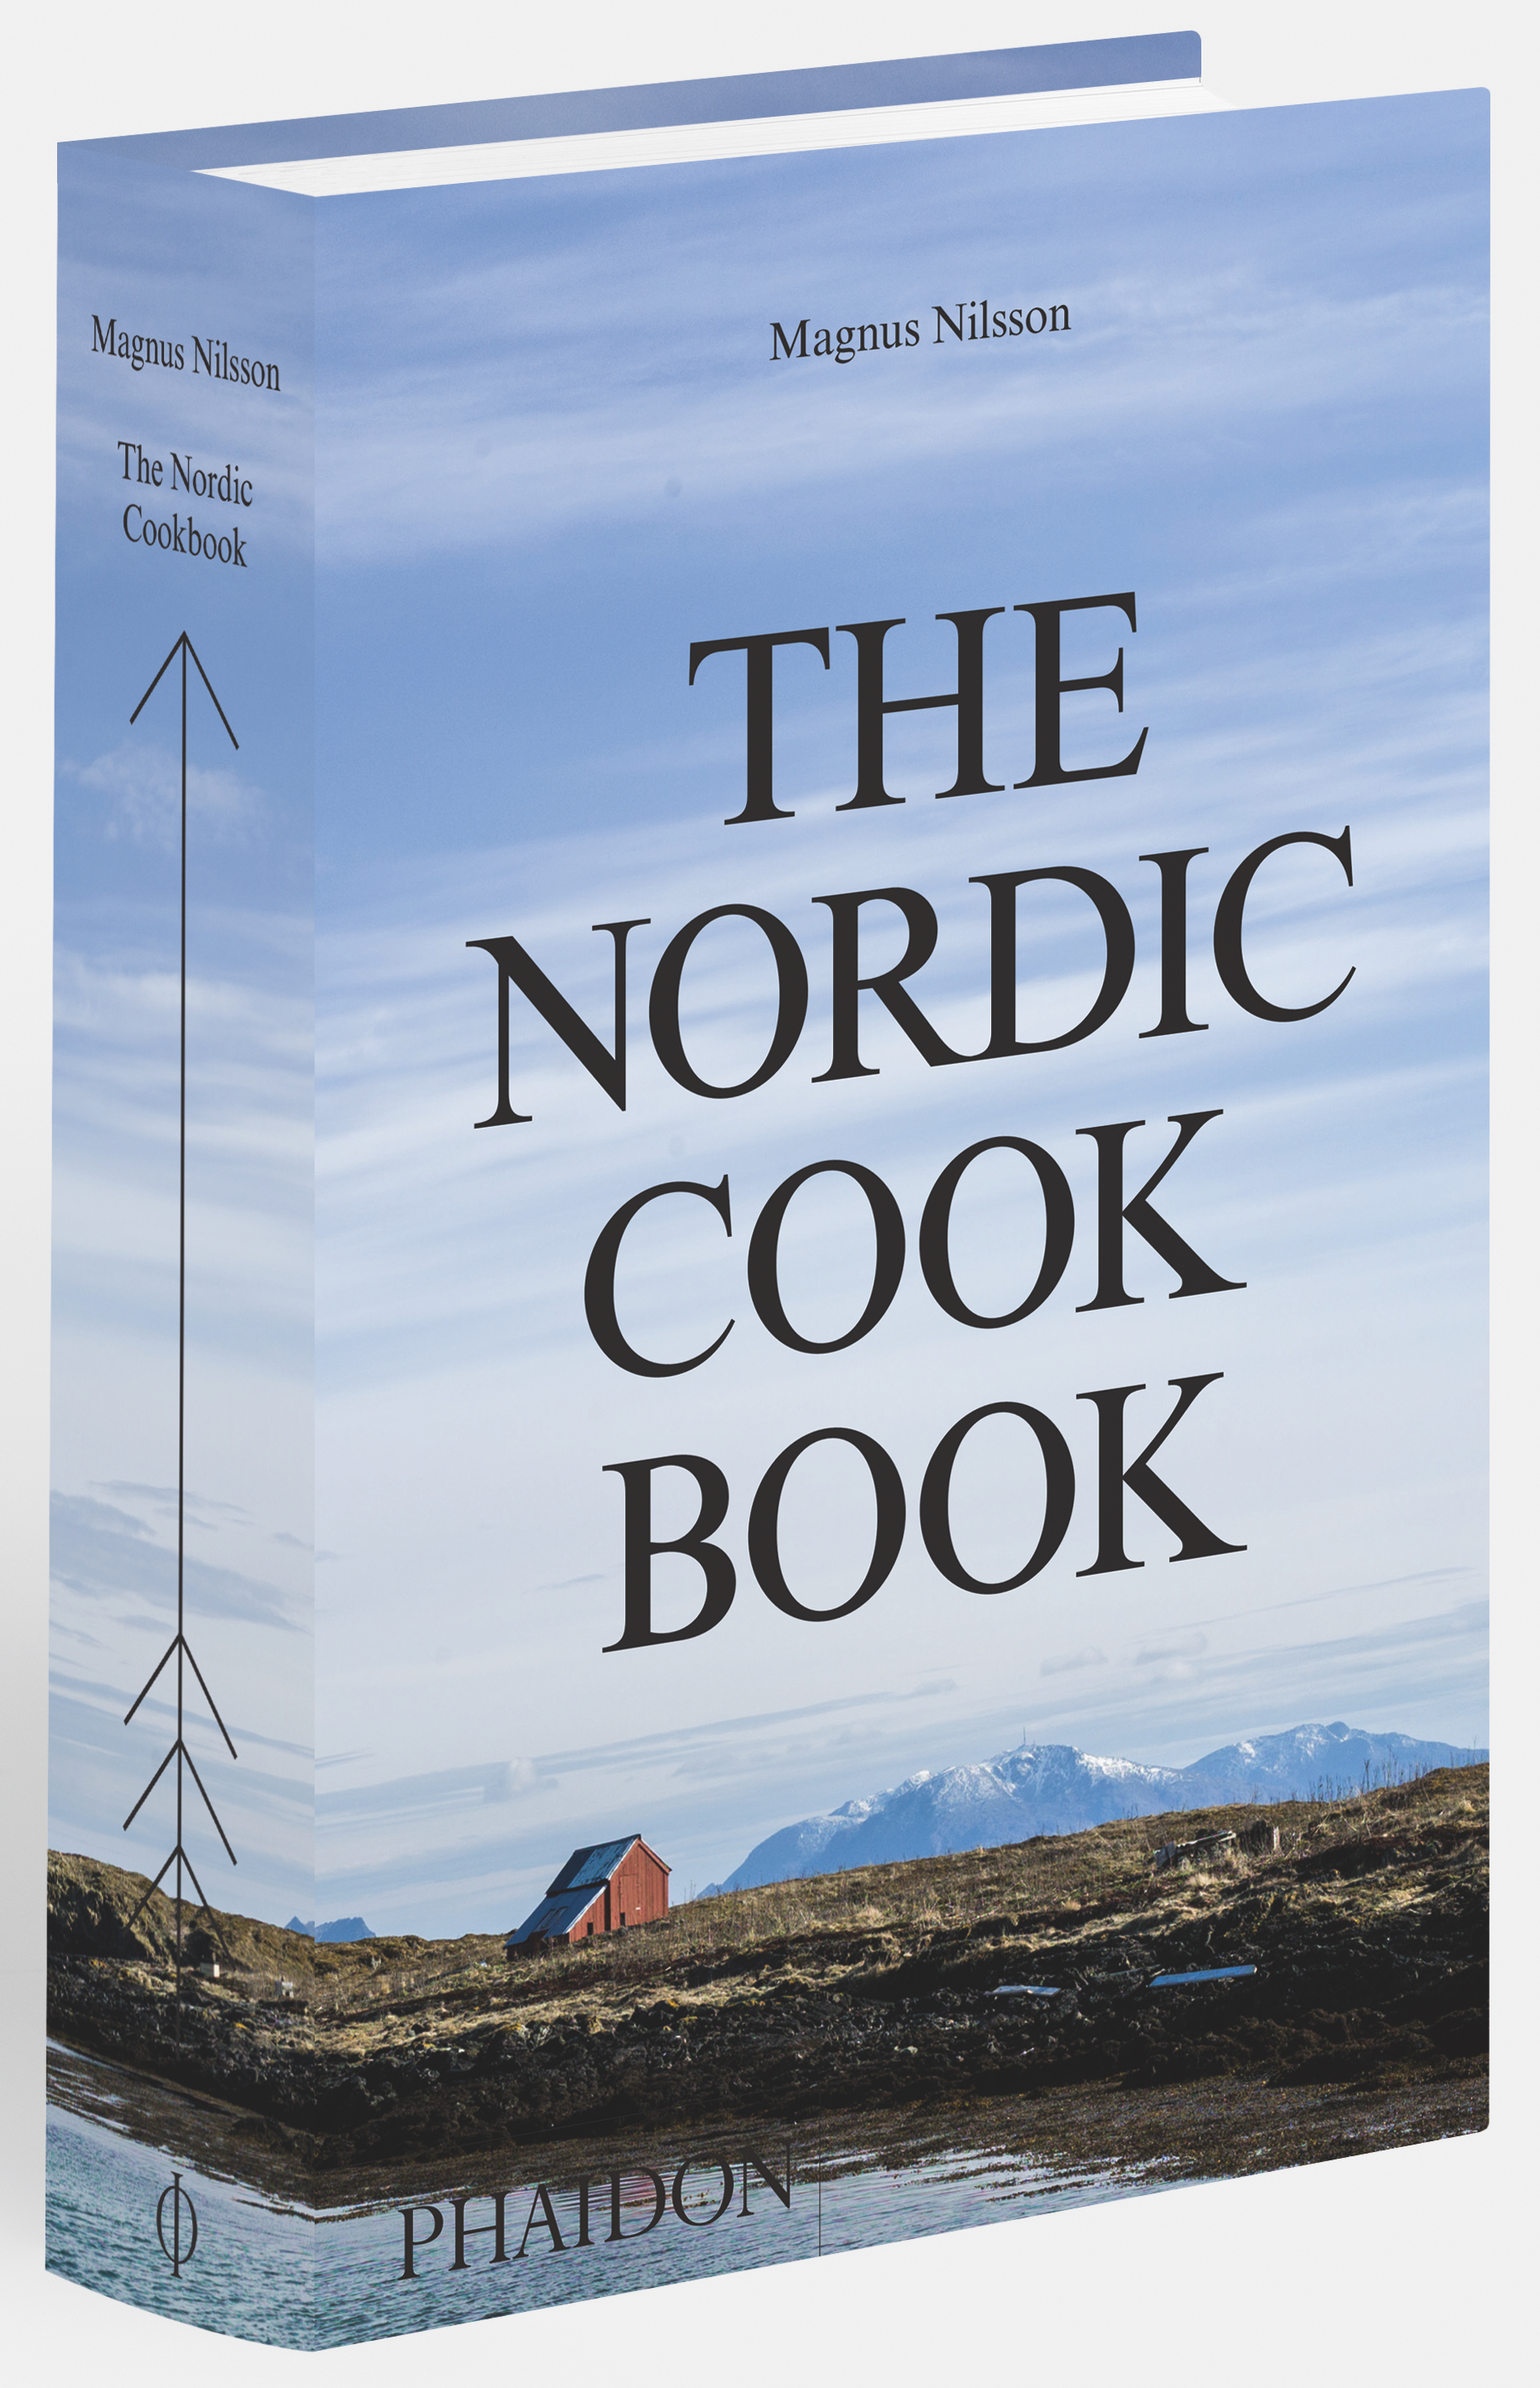 Cover Art for The Nordic Cookbook, ISBN: 9780714868721